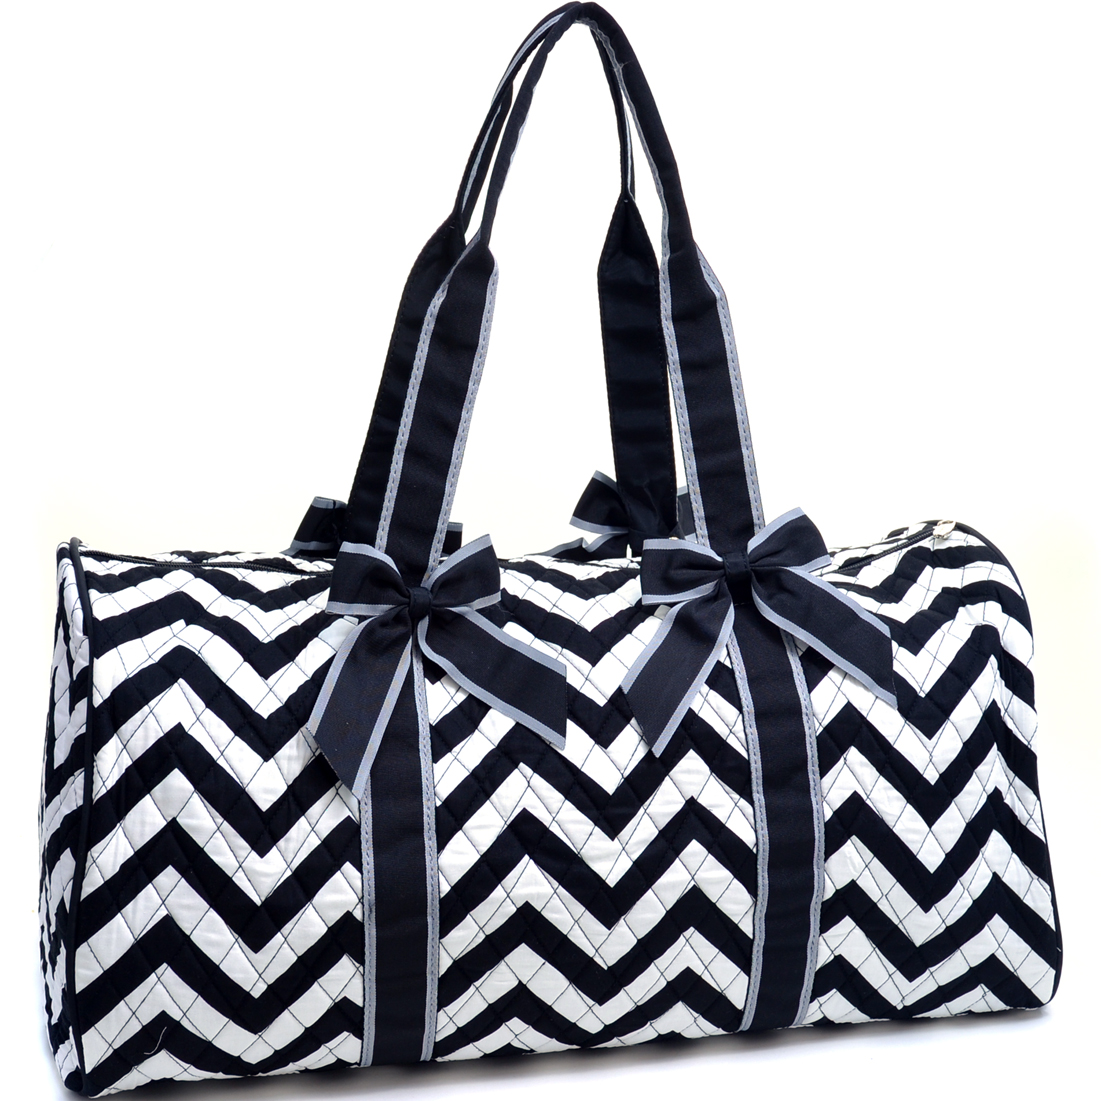 Rosen Blue™ Large Quilted Duffle Bag with Bow Decor in Chevron Print